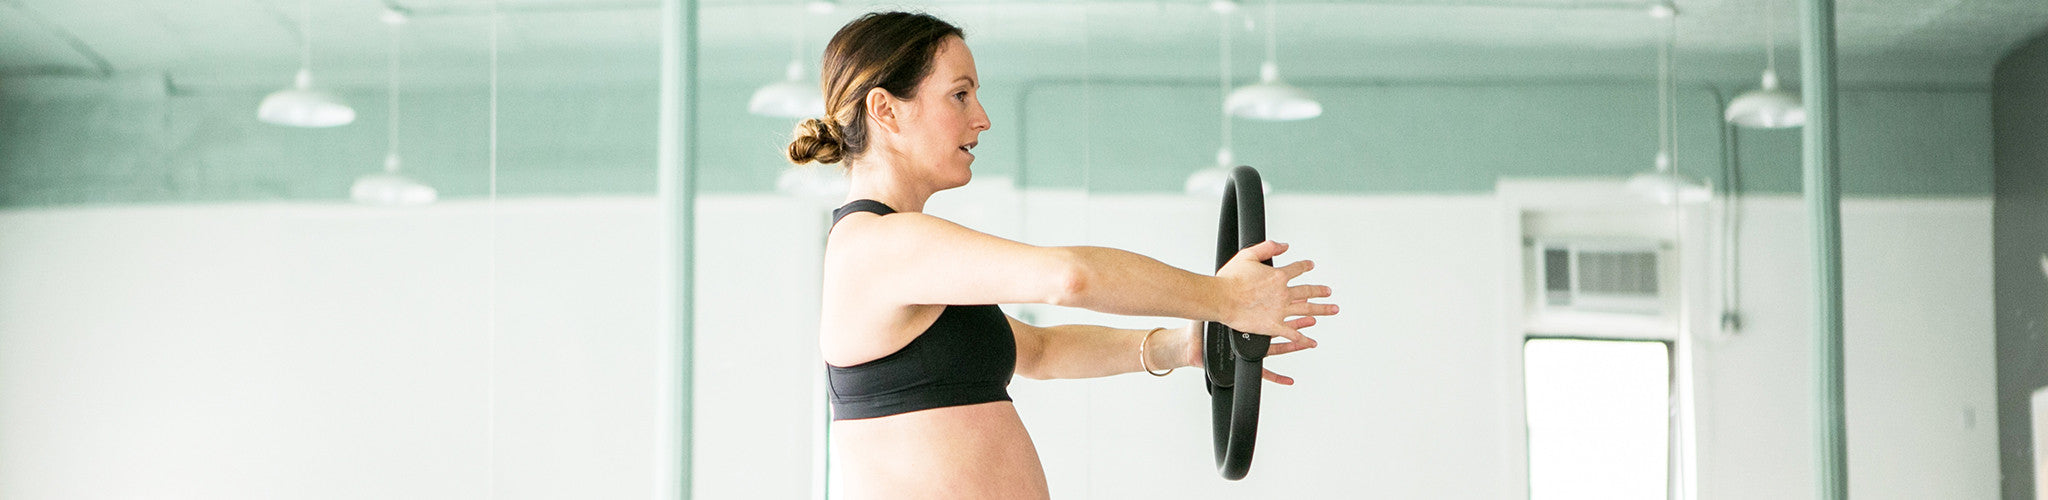 Prenatal Arms Workout #1